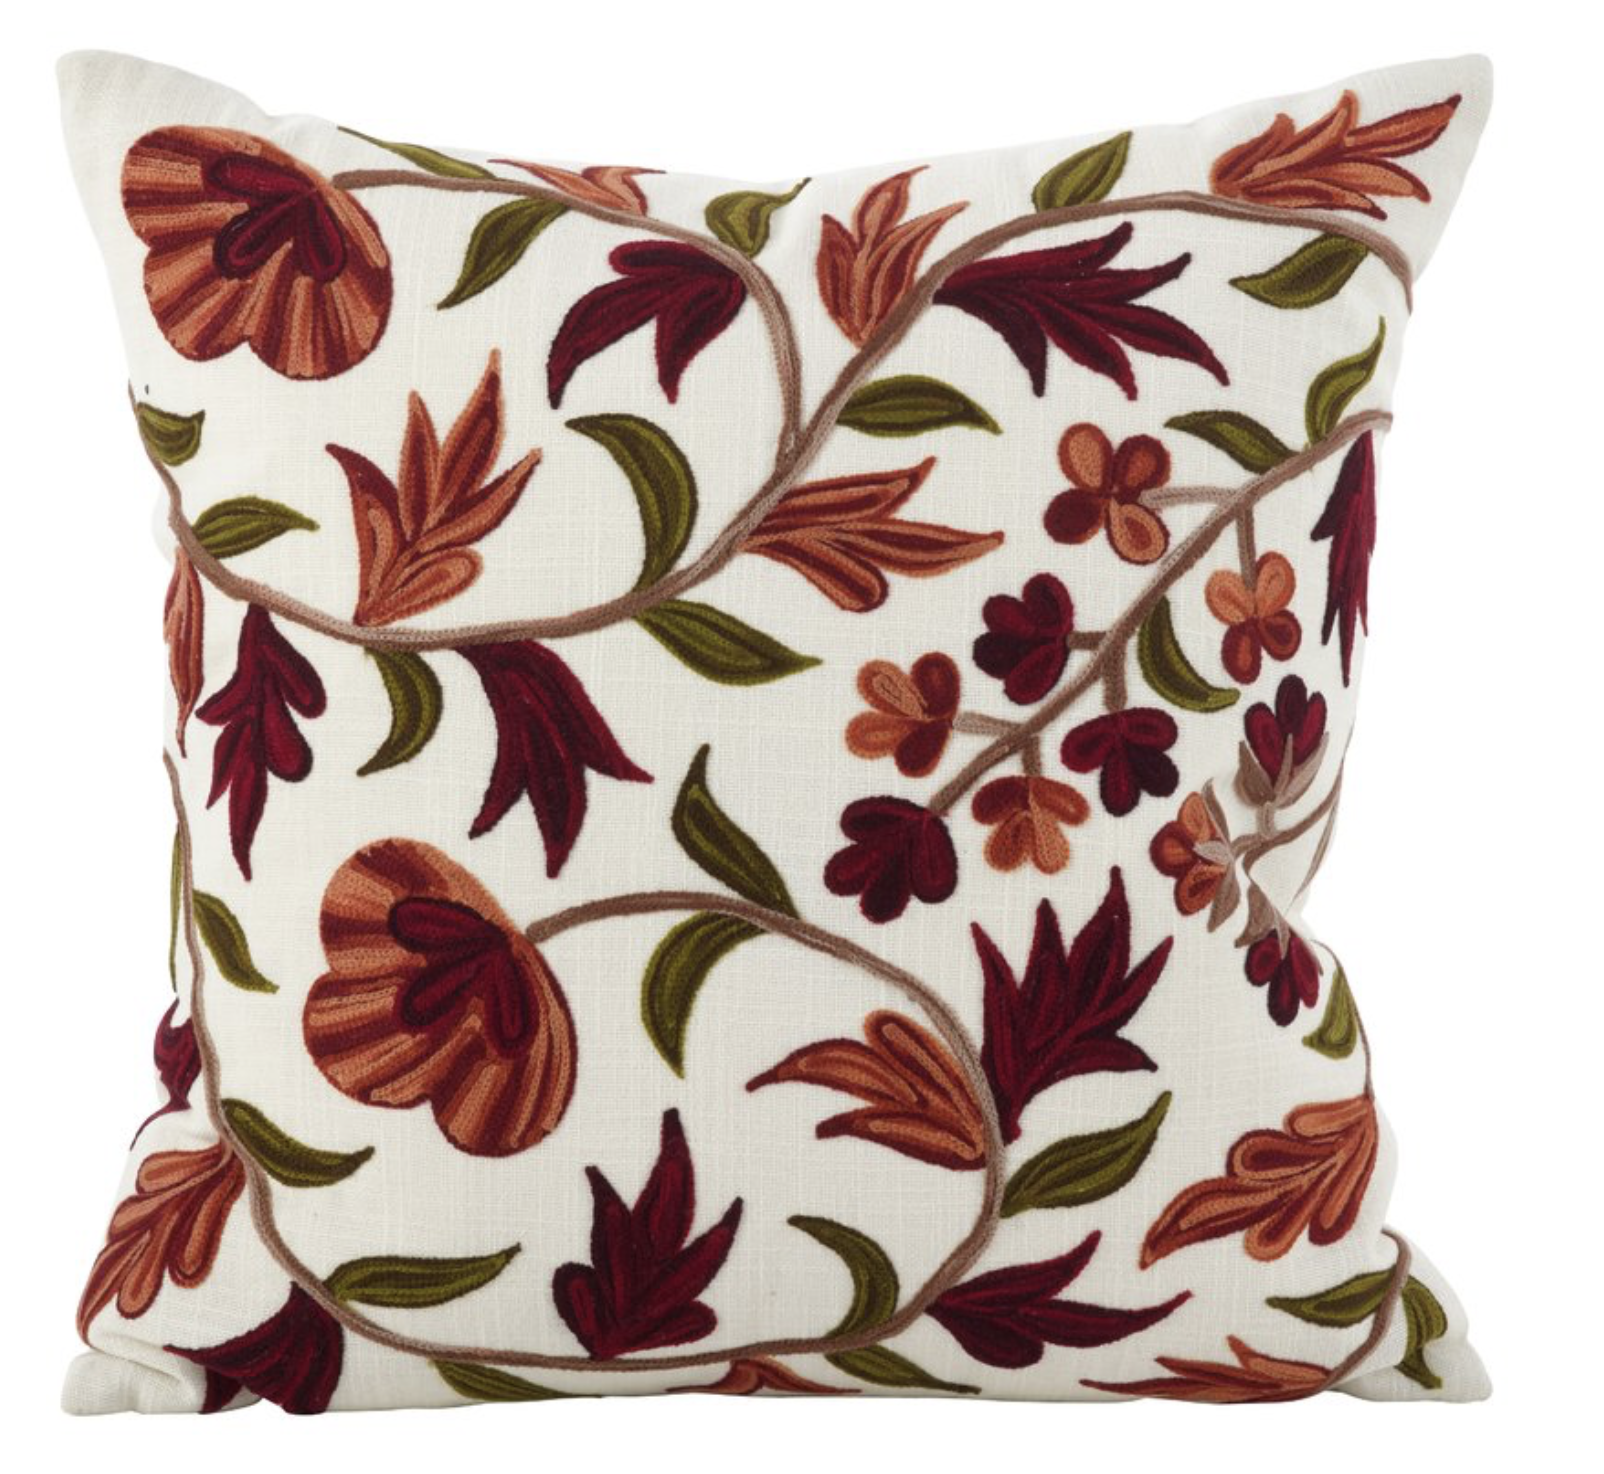 pottery barn style embroidered throw pillow for less